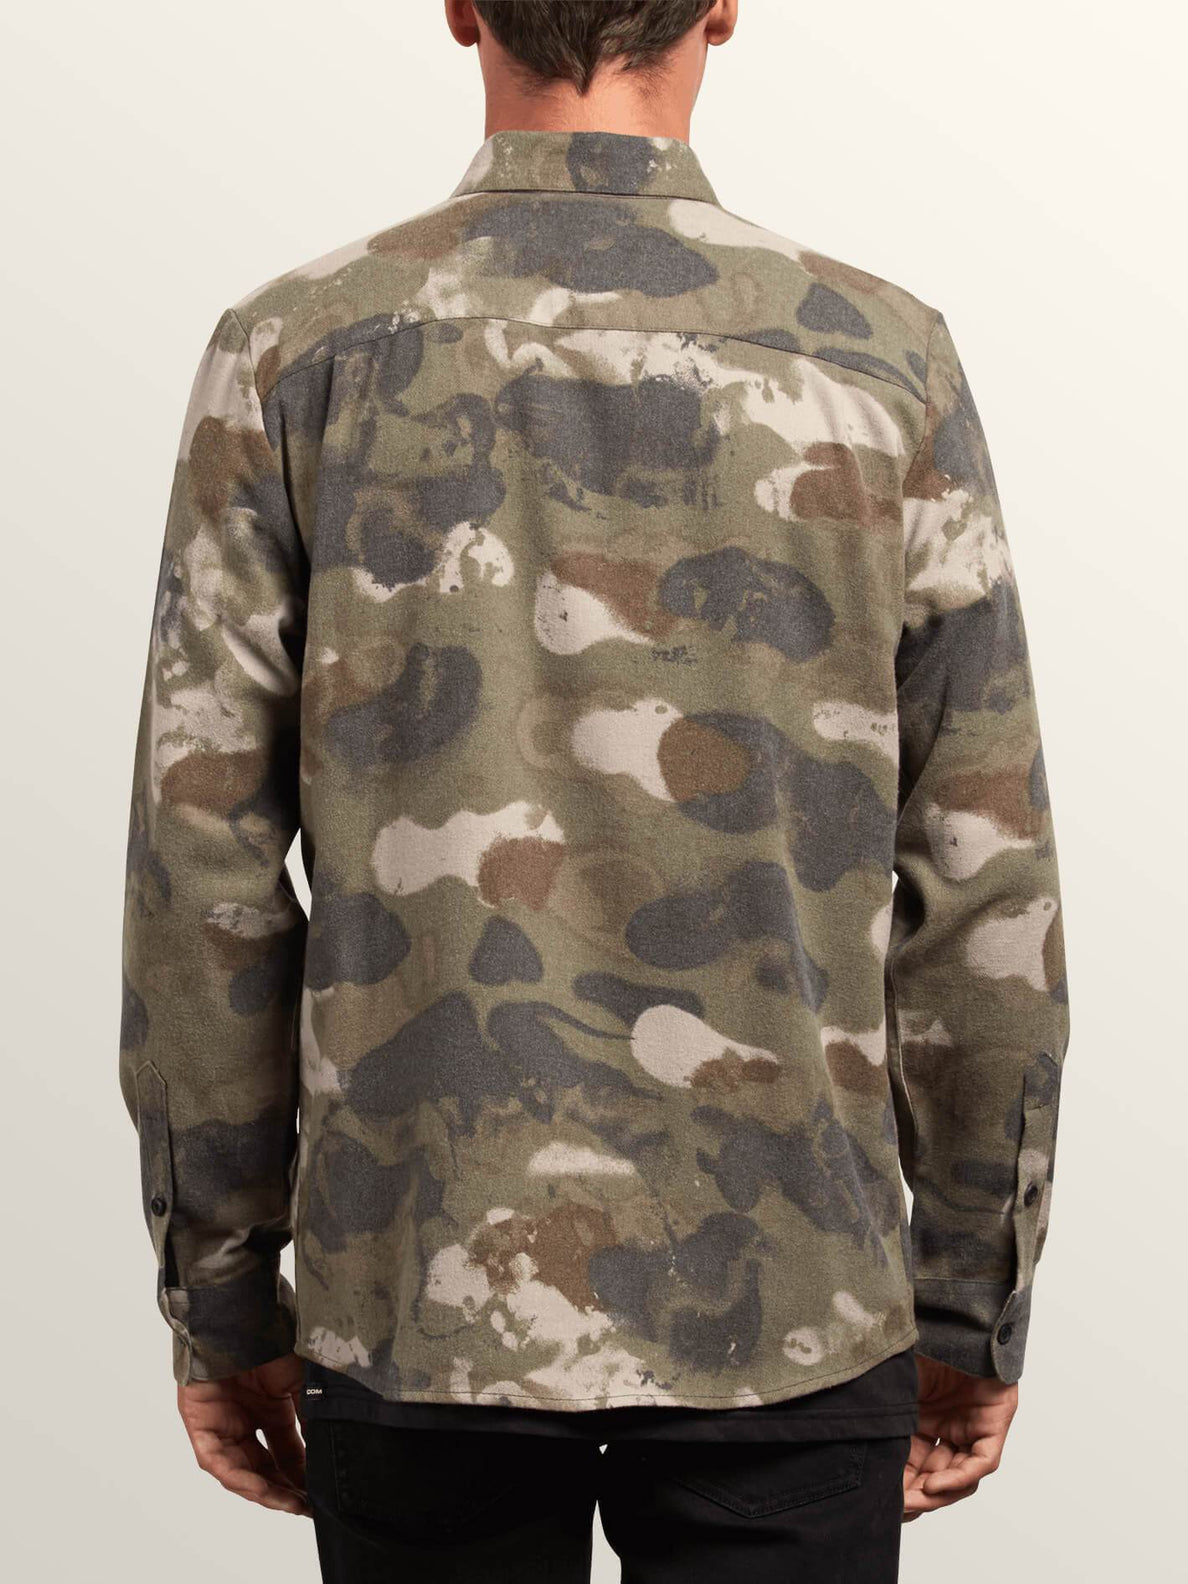 Dragstone Shirt - Camouflage